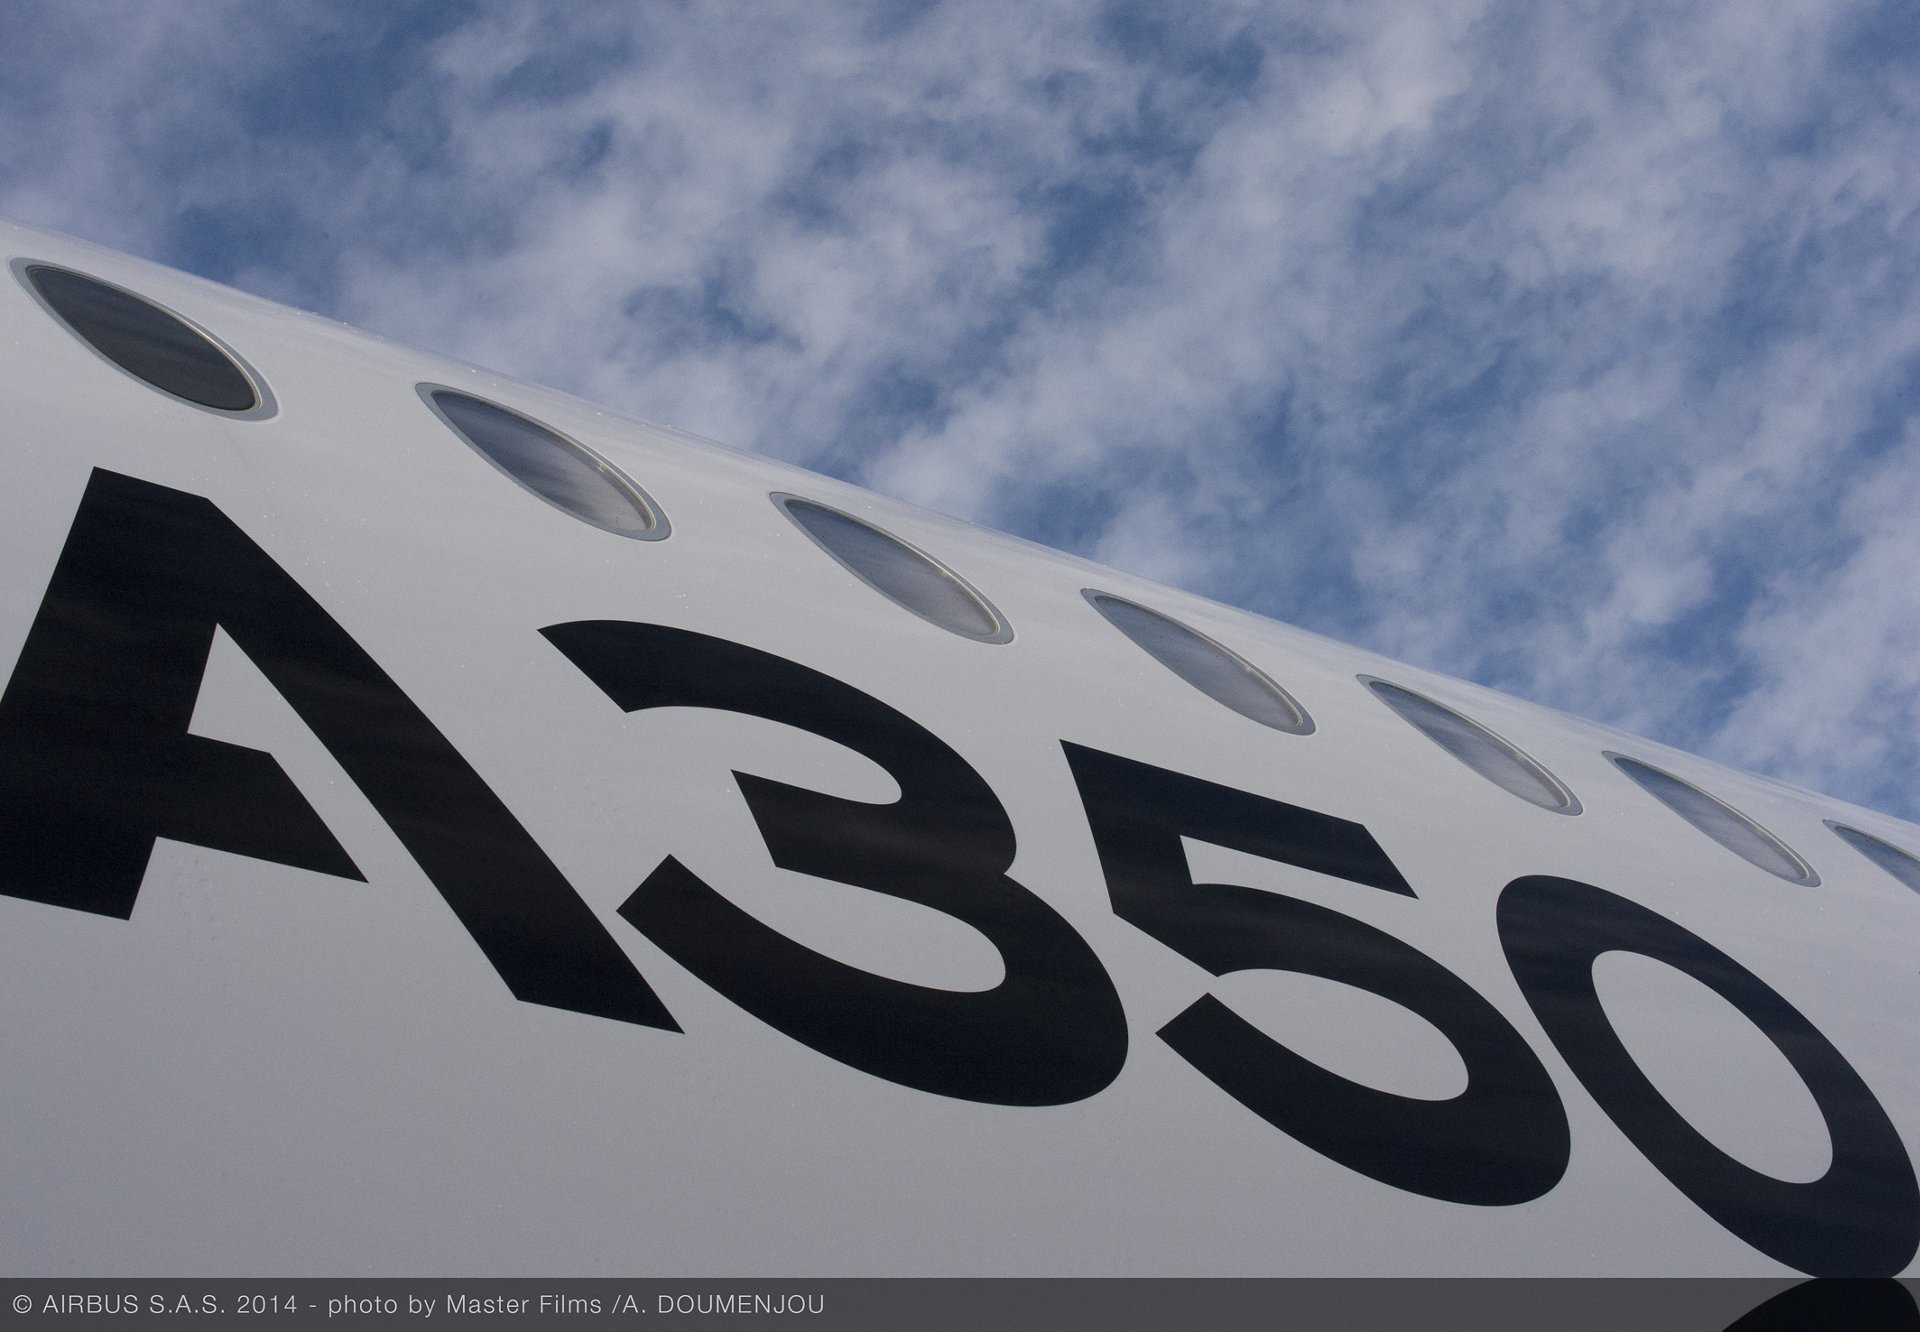 A350 XWB ROUTE PROVING TRIP 3 - SANTIAGO - FUSELAGE CLOSE UP, A350 XWB route proving close up